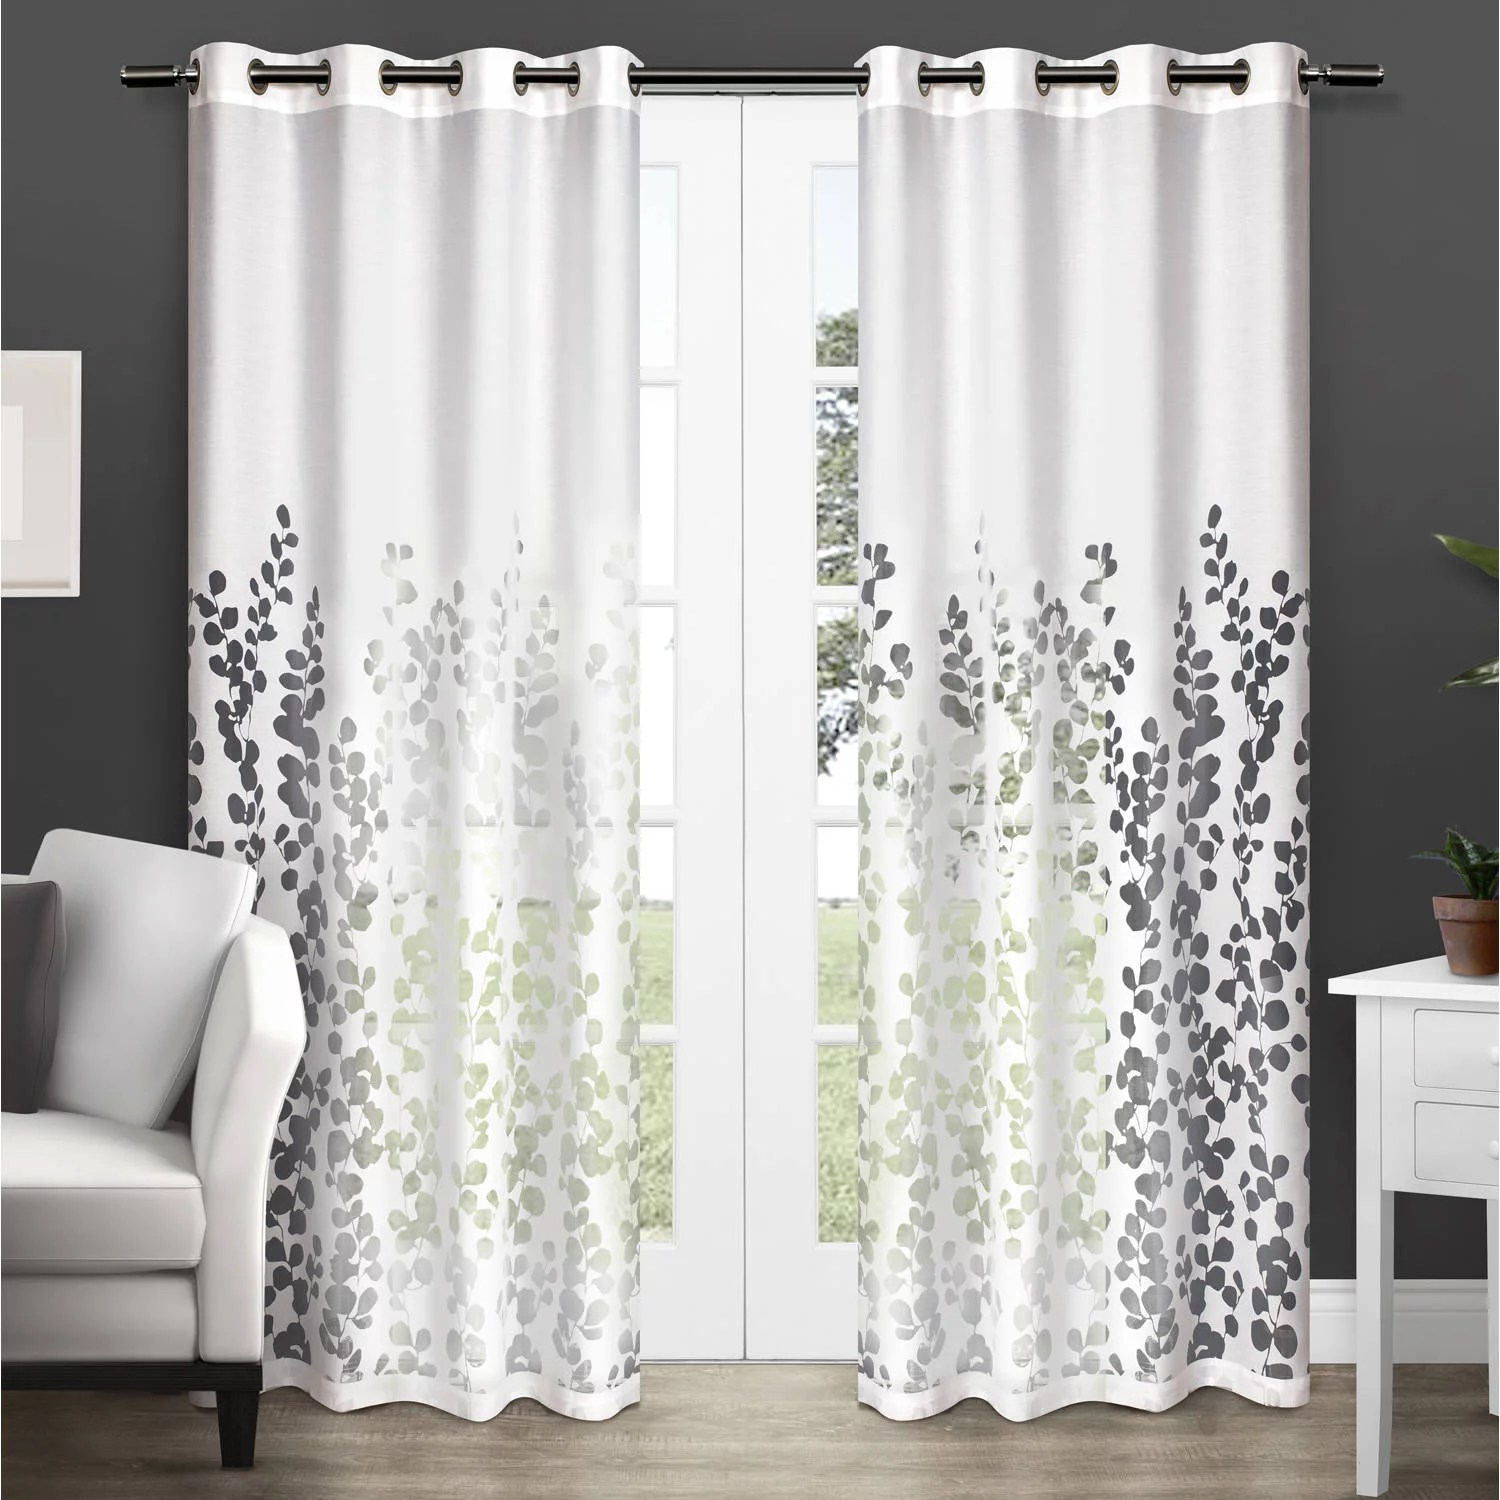 Sheer Curtains Australia Exclusive Home Curtains 2 Pack Wilshire Burnout Sheer Grommet Top Curtain Panels